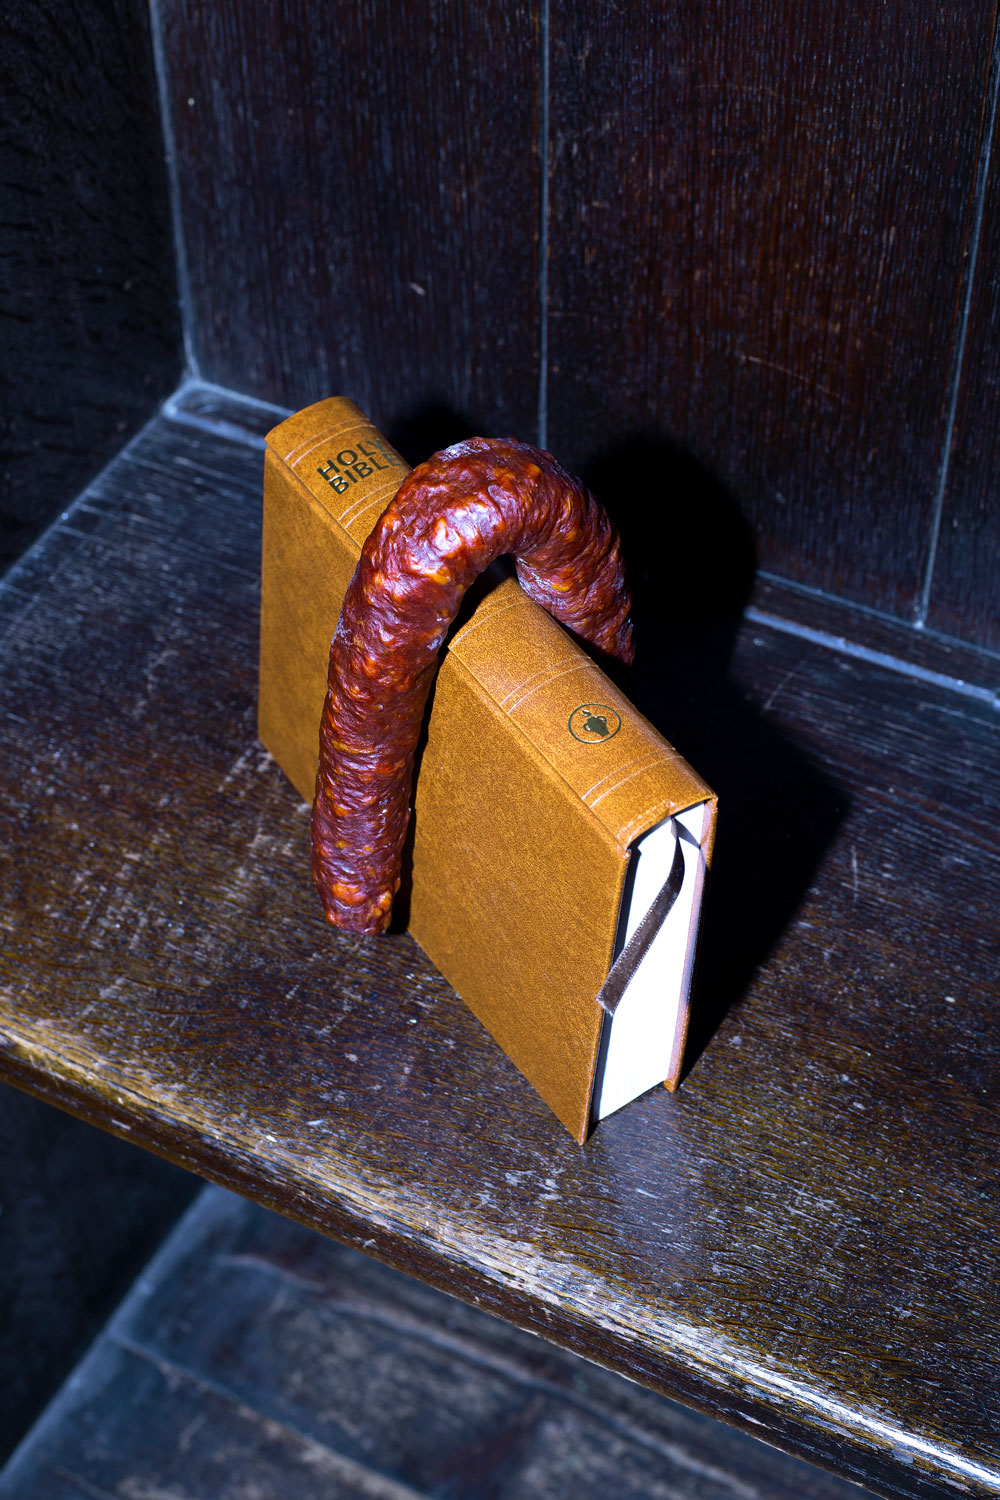 Melissa Spiccia | ON THE THIRD DAY SAUSAGE BIBLE MELISSA SPICCIA